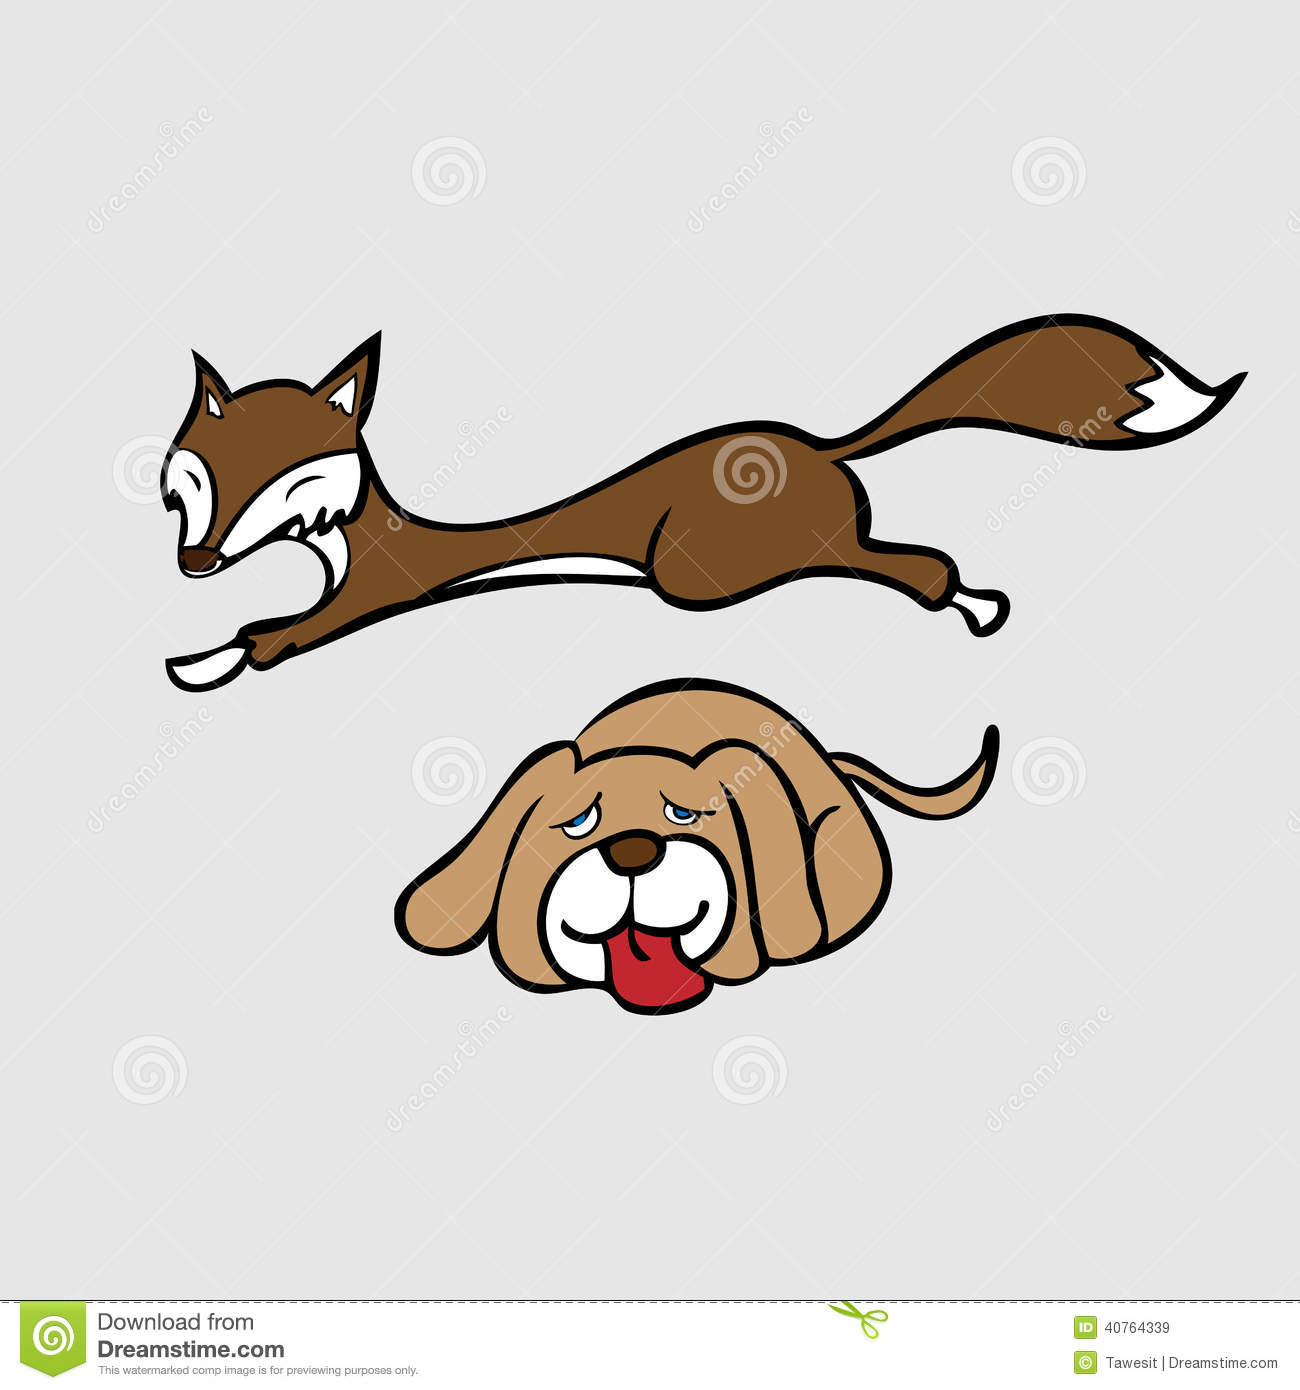 quick brown fox jump over lazy dog stock vector image bow clipart no background bow clip art images